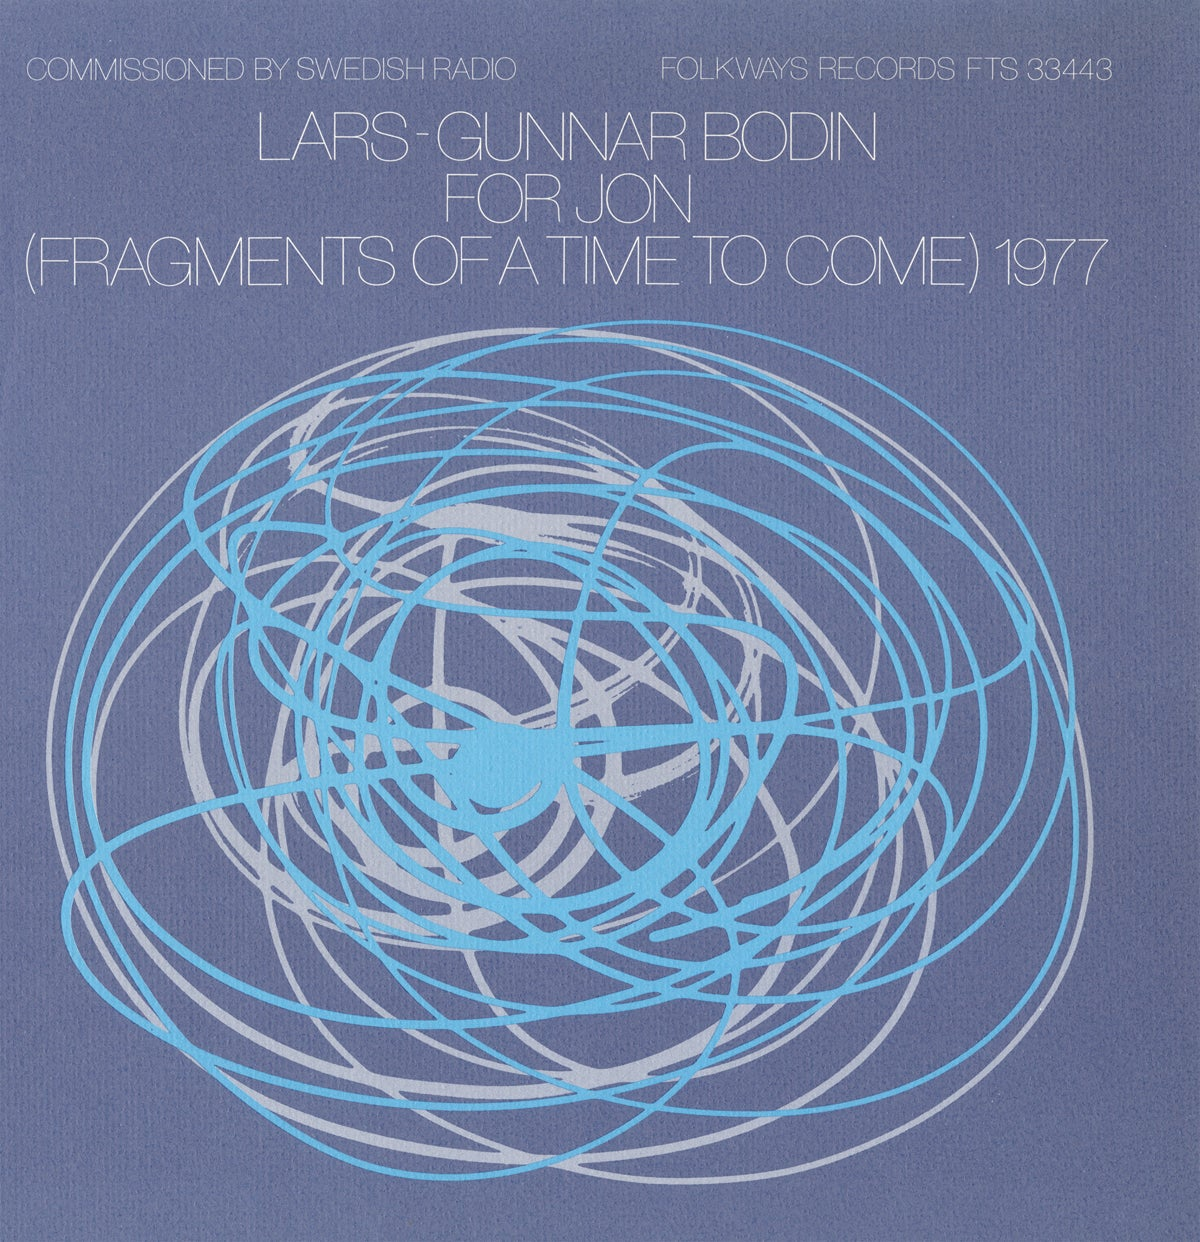 OLLE SKOLD - LARS-GUNNAR BODIN-FOR JON (FRAGMENTS OF A TIME TO